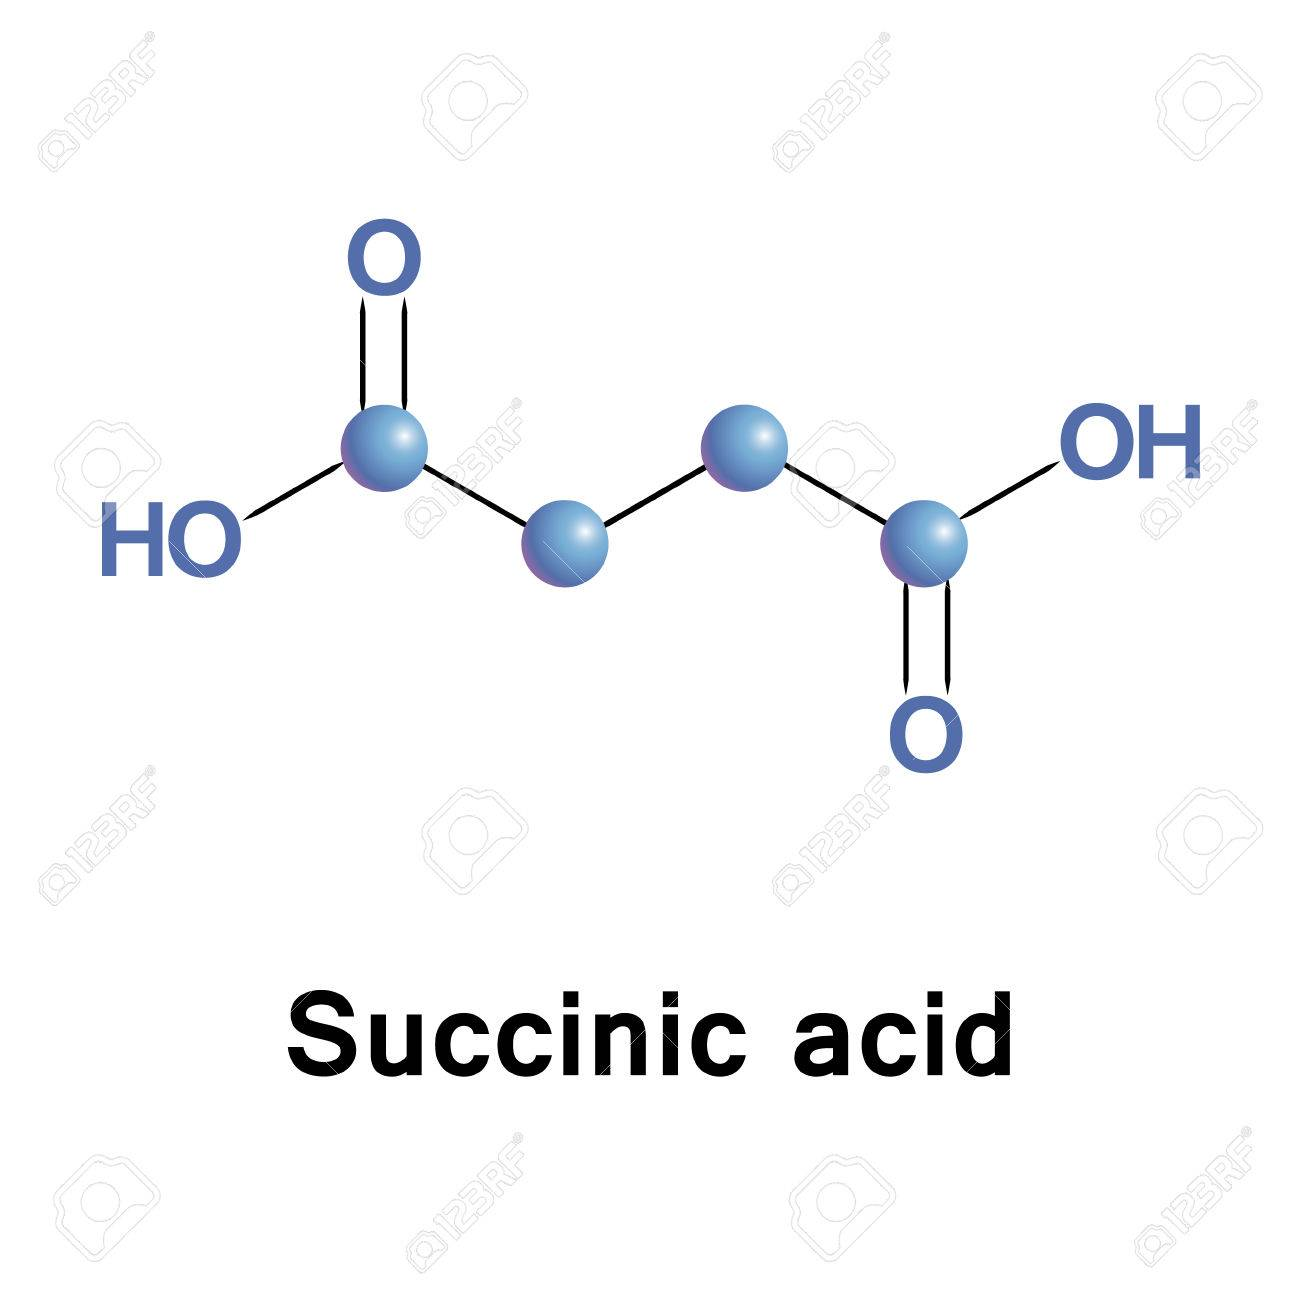 Succinic Acid Is A Dicarboxylic Acid It Takes The Form Of An